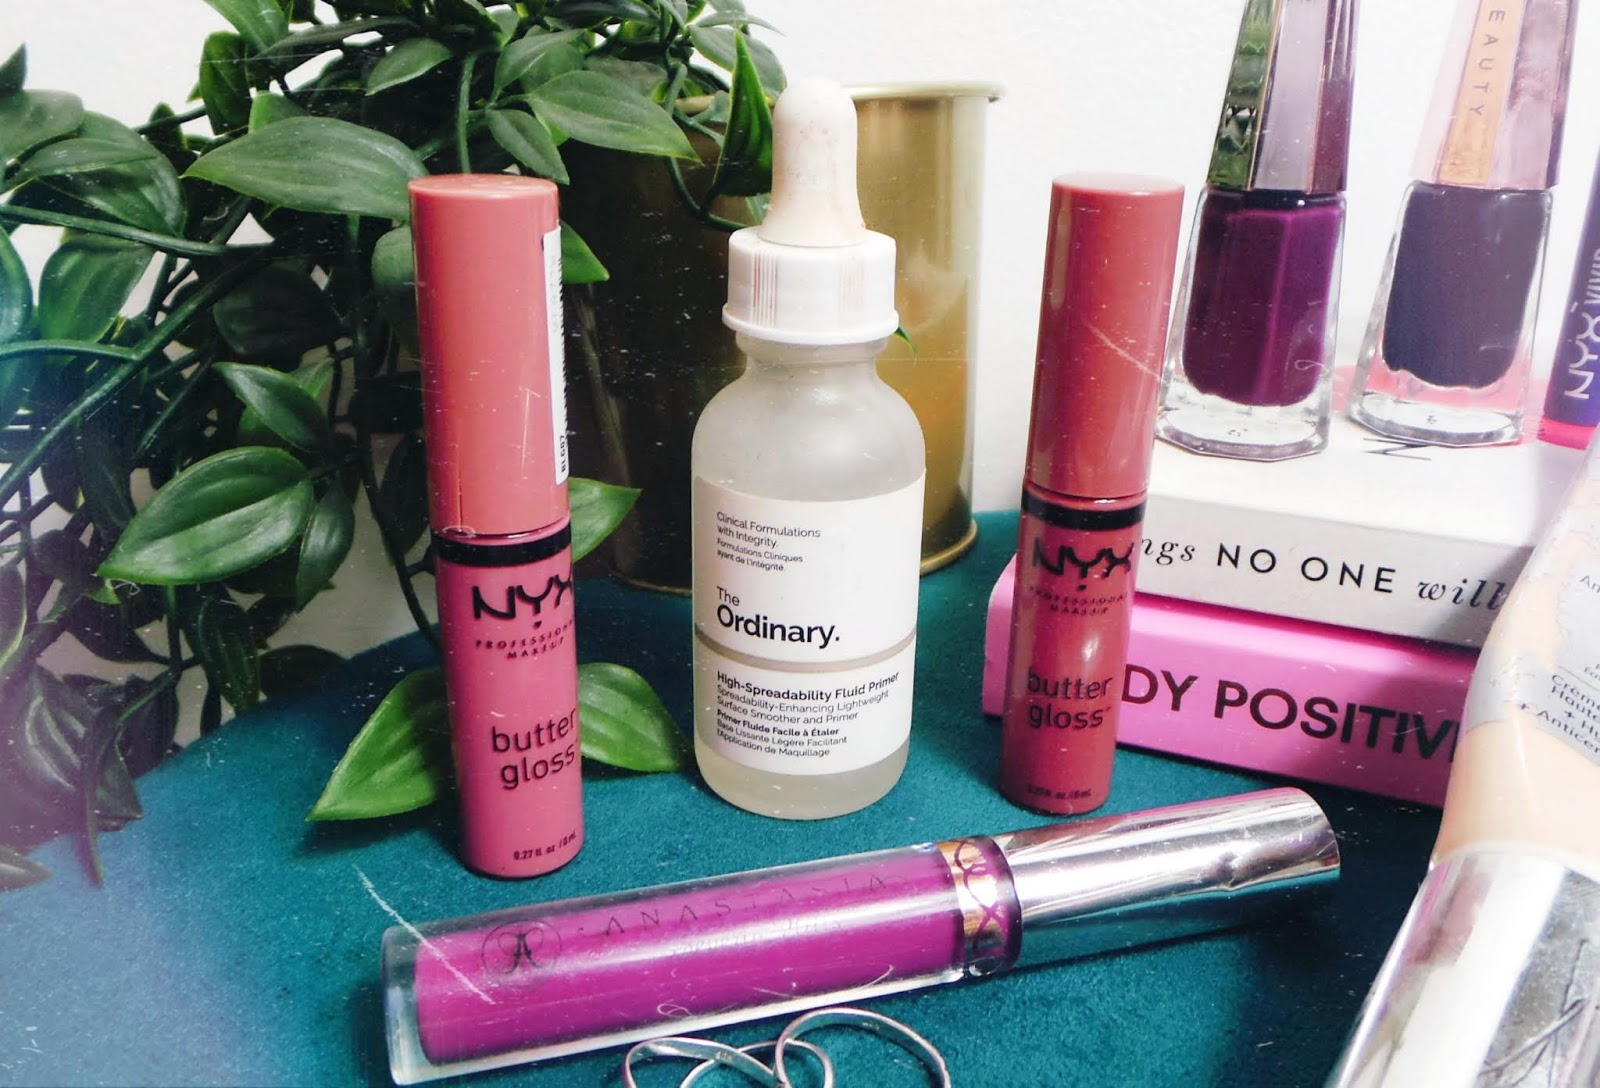 Nyx lipglosses and the ordinary fluid primer